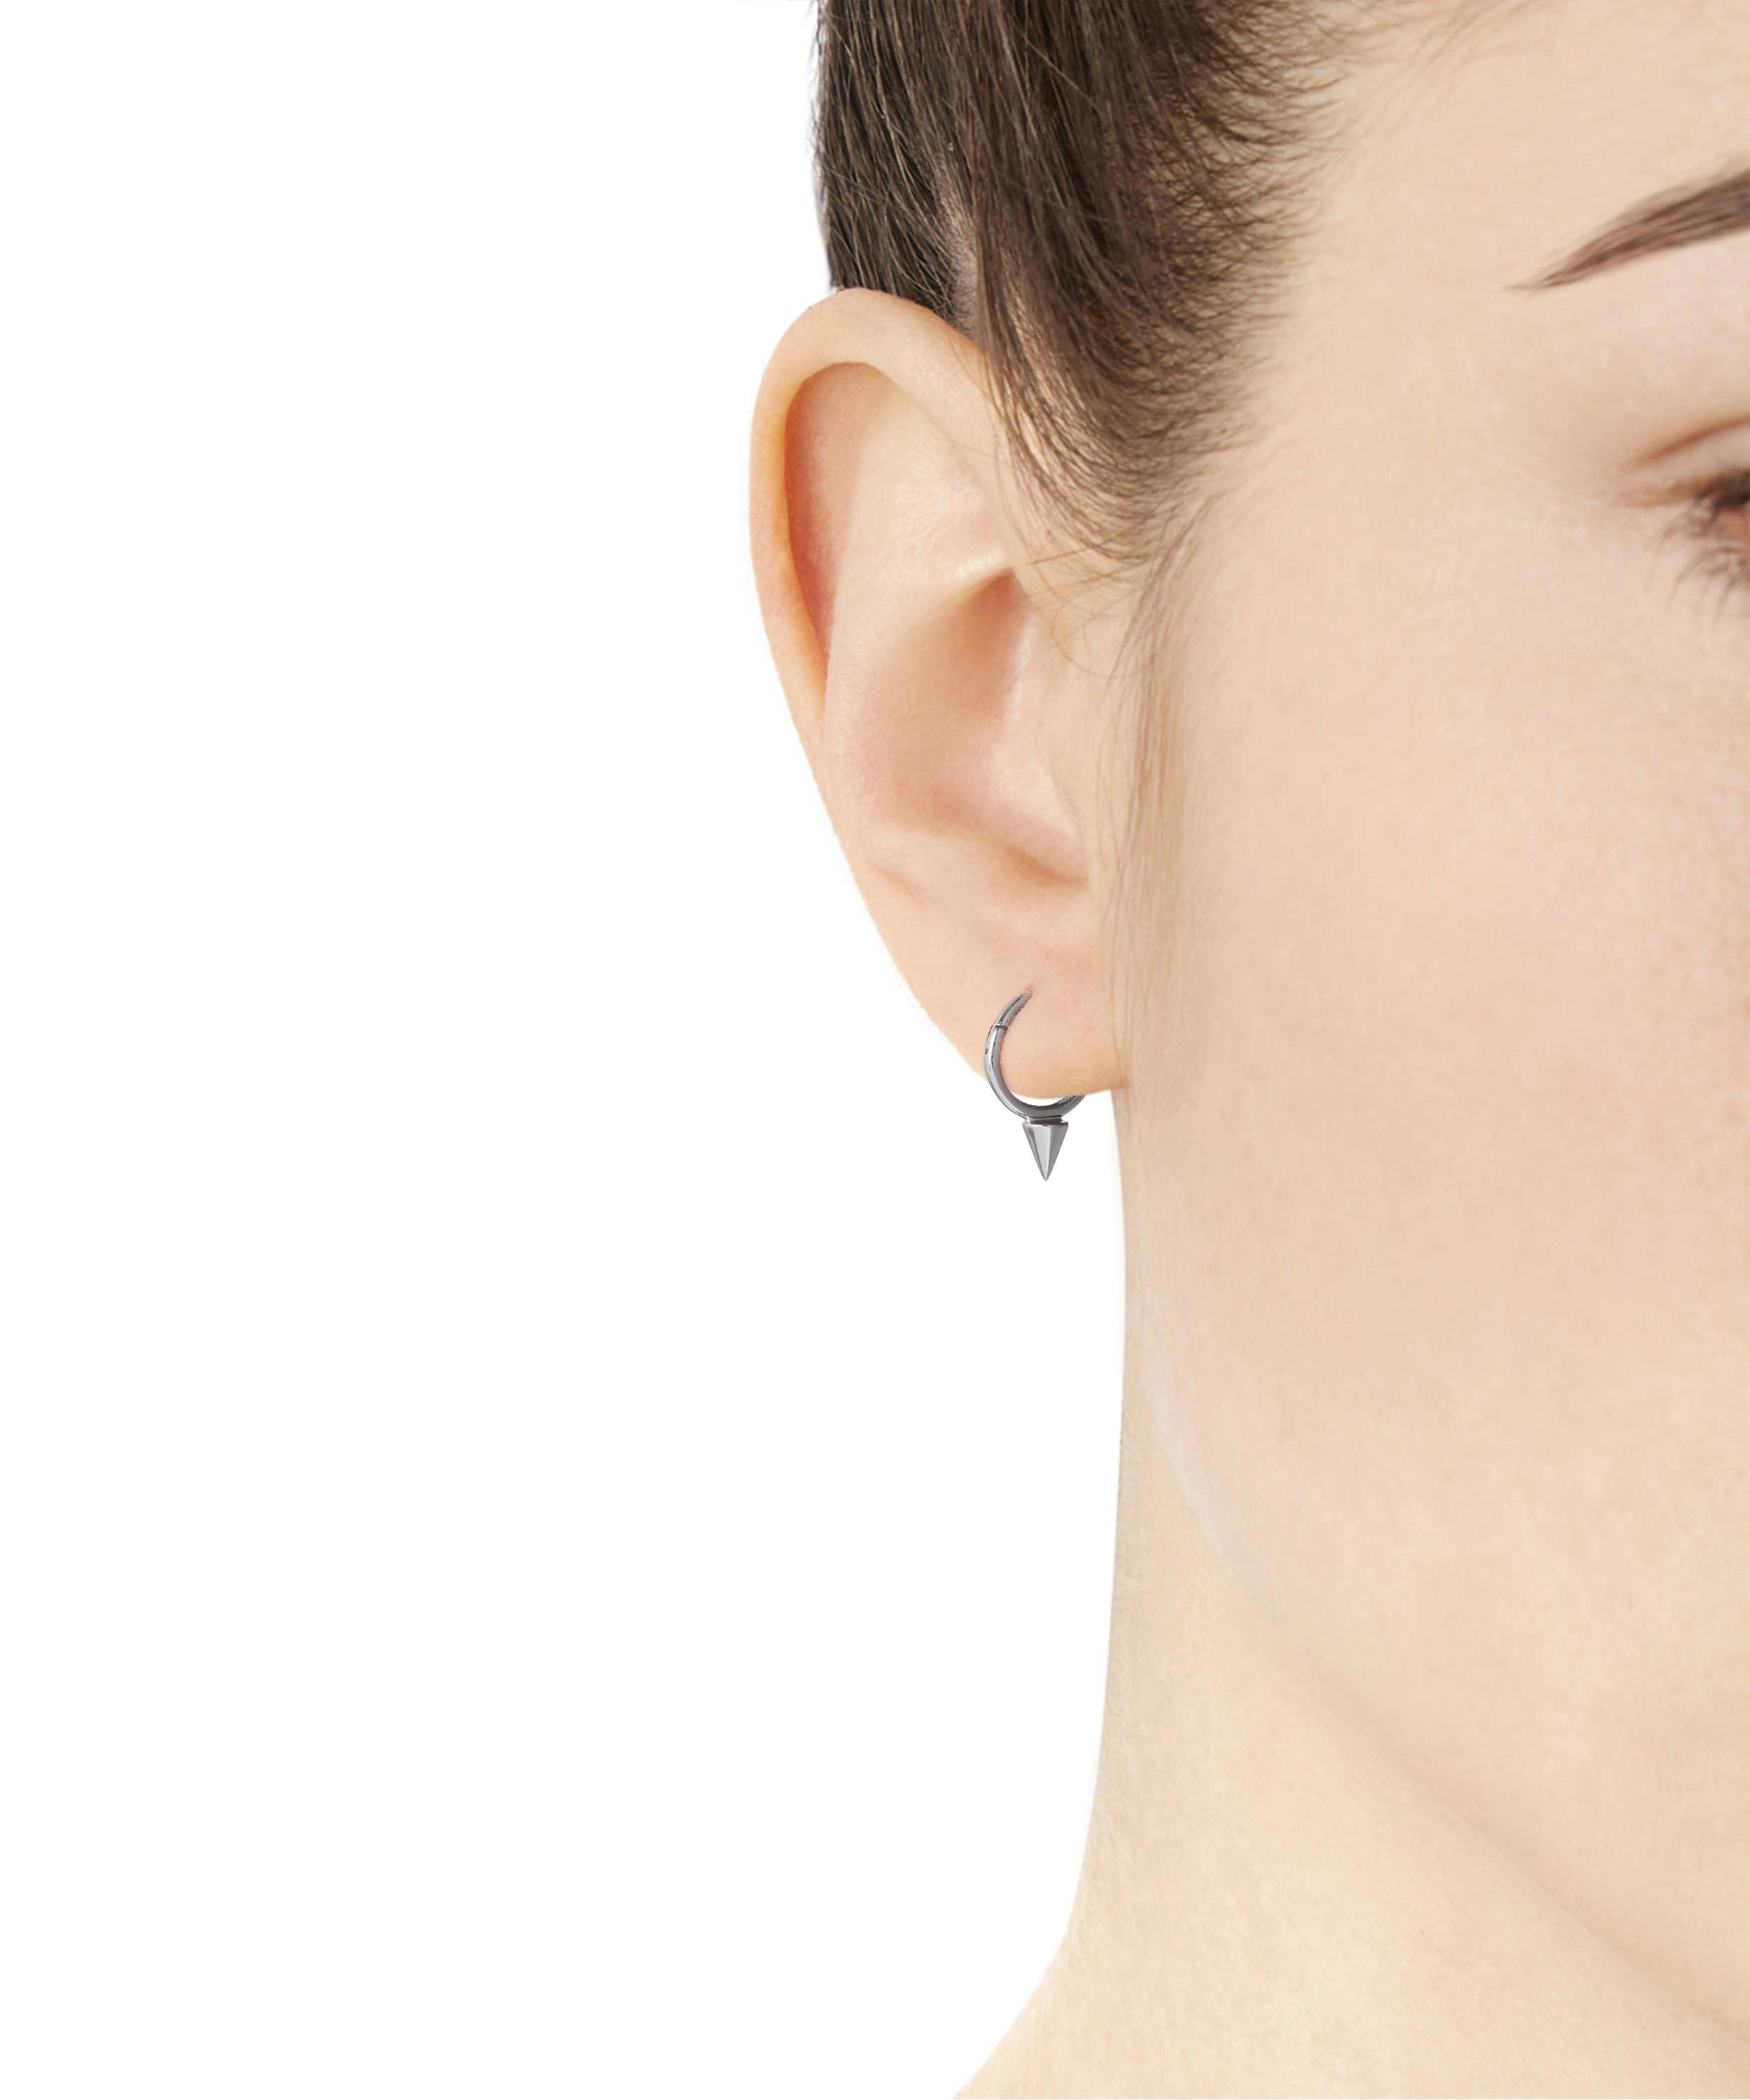 normal single in gold lyst earring white plated earrings metallic jewelry product gallery loewe